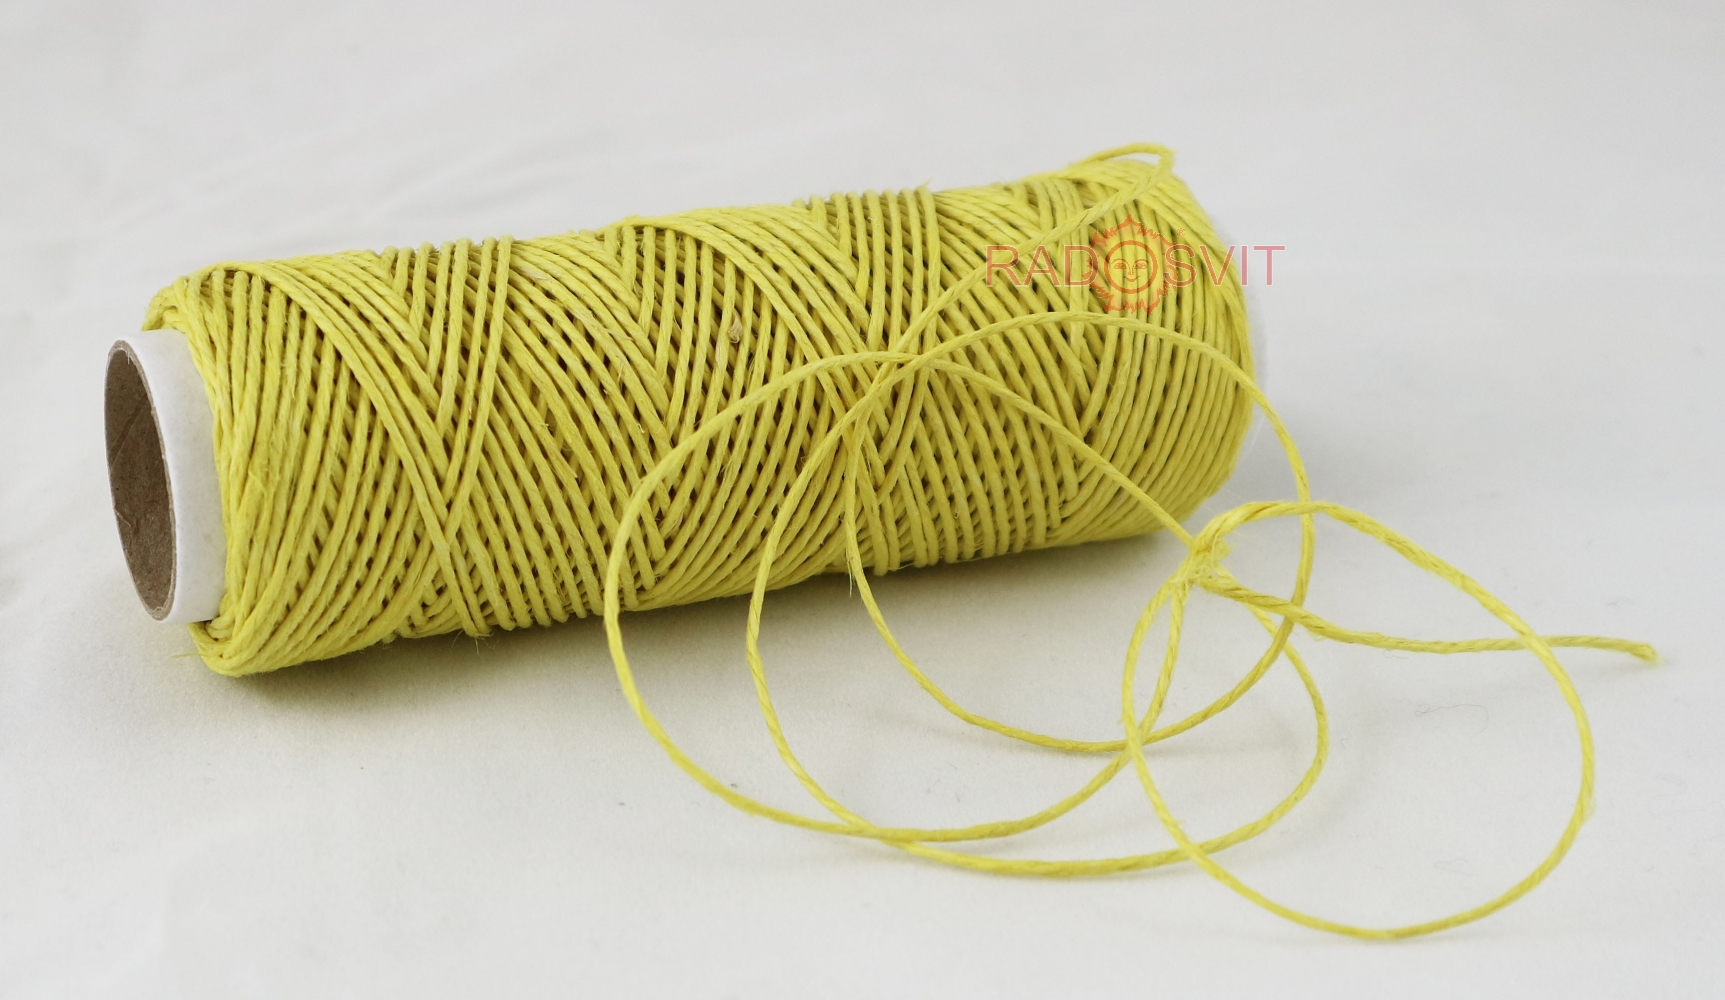 Polished linen twine, yellow color, 35 meters - 1